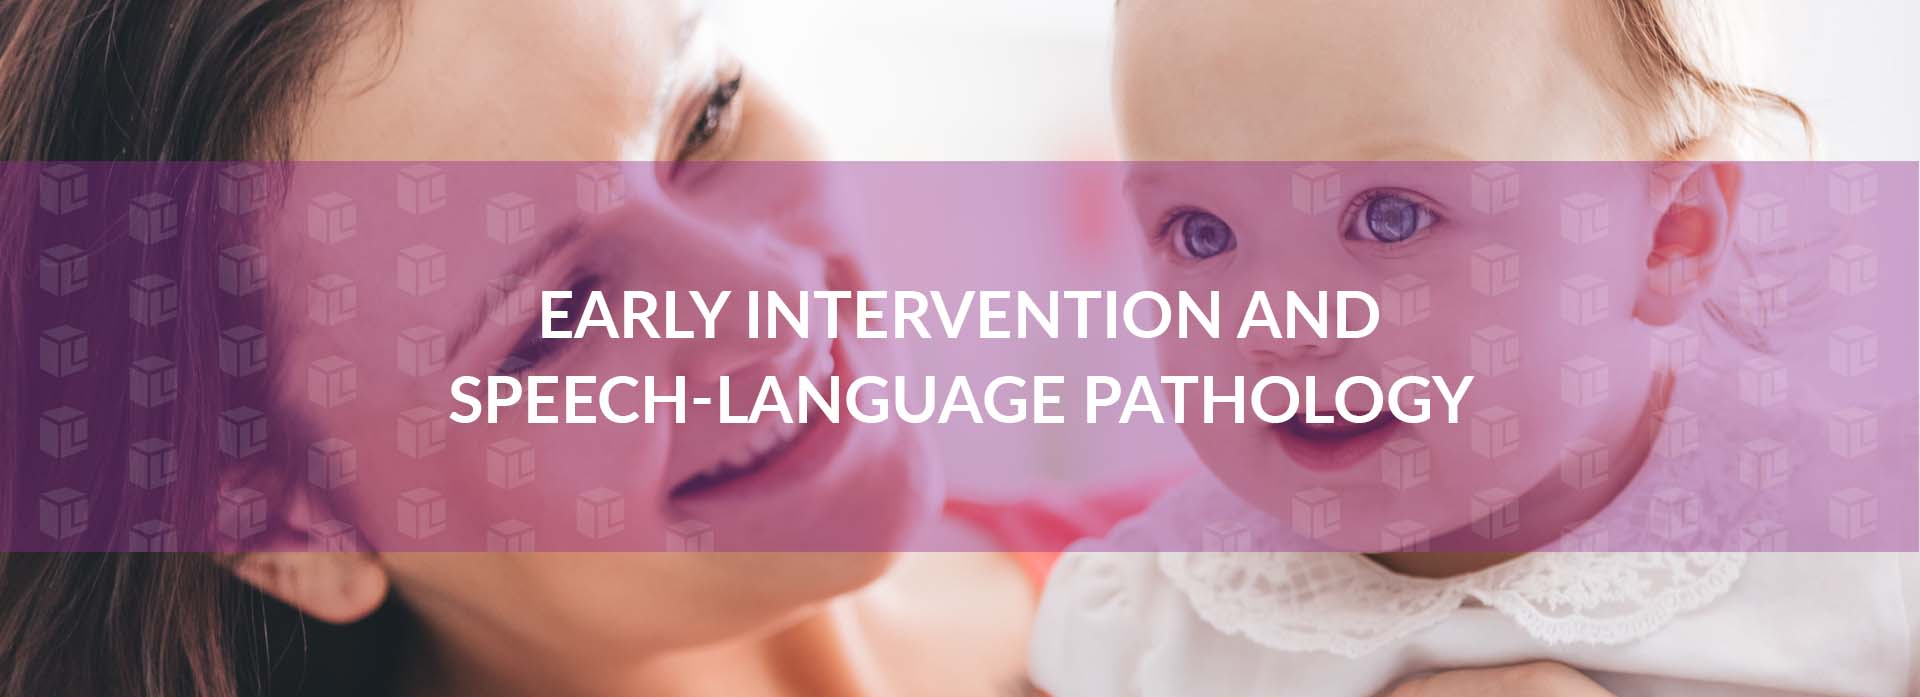 Speech-Language Pathology Early Intervention